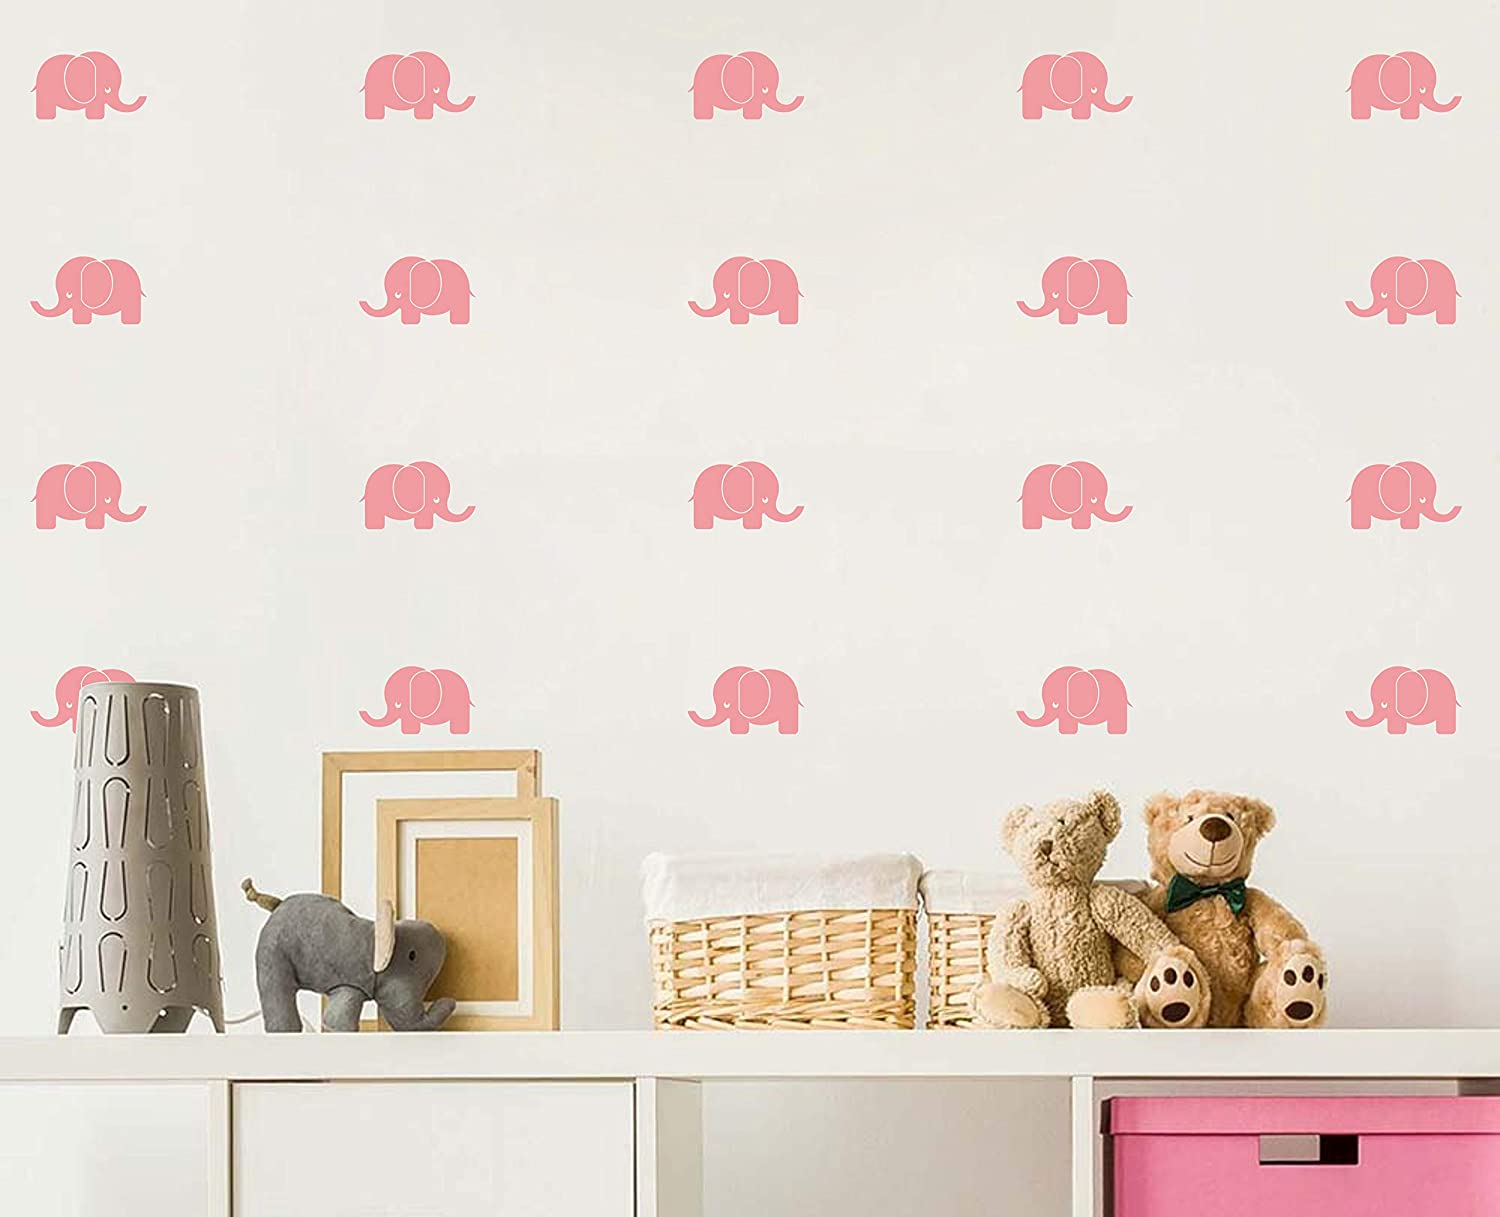 Baby Elephant Wall Decals/Nursery Wall Stickers/Baby Room Decor/Animal Vinyls/Baby Shower Gift, Removable Vinyl Wall Stickers for Baby Kids Boy Girl Bedroom Nursery Decor(A33) (State Gray) Yystore